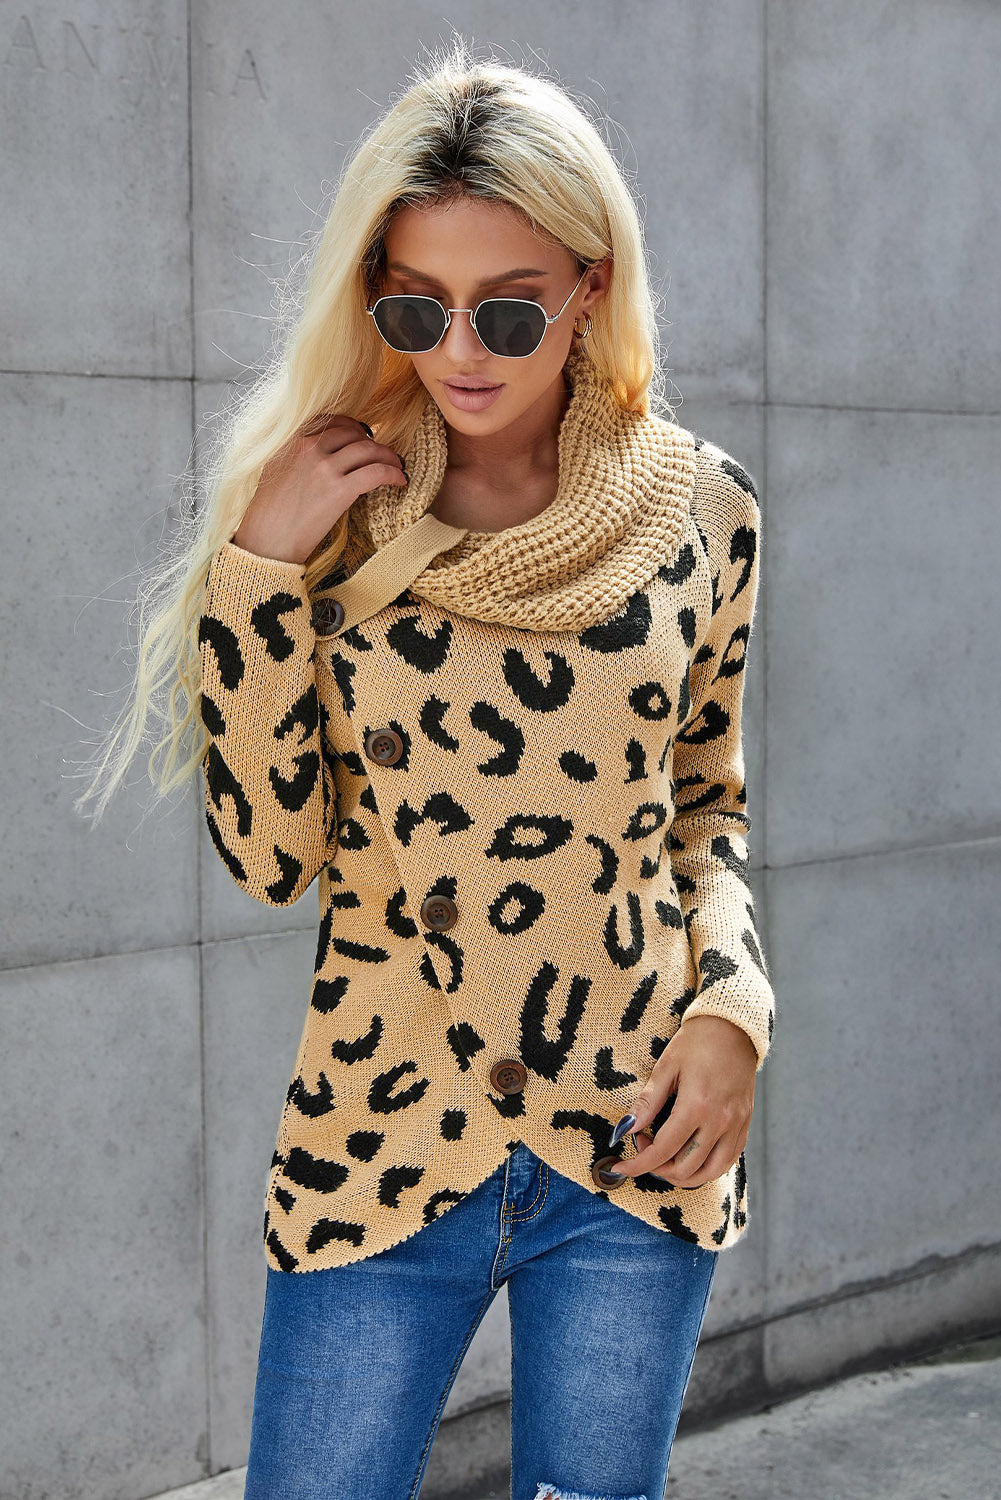 Khaki Leopard Print Casual Knitted Sweater Sweaters & Cardigans Discount Designer Fashion Clothes Shoes Bags Women Men Kids Children Black Owned Business